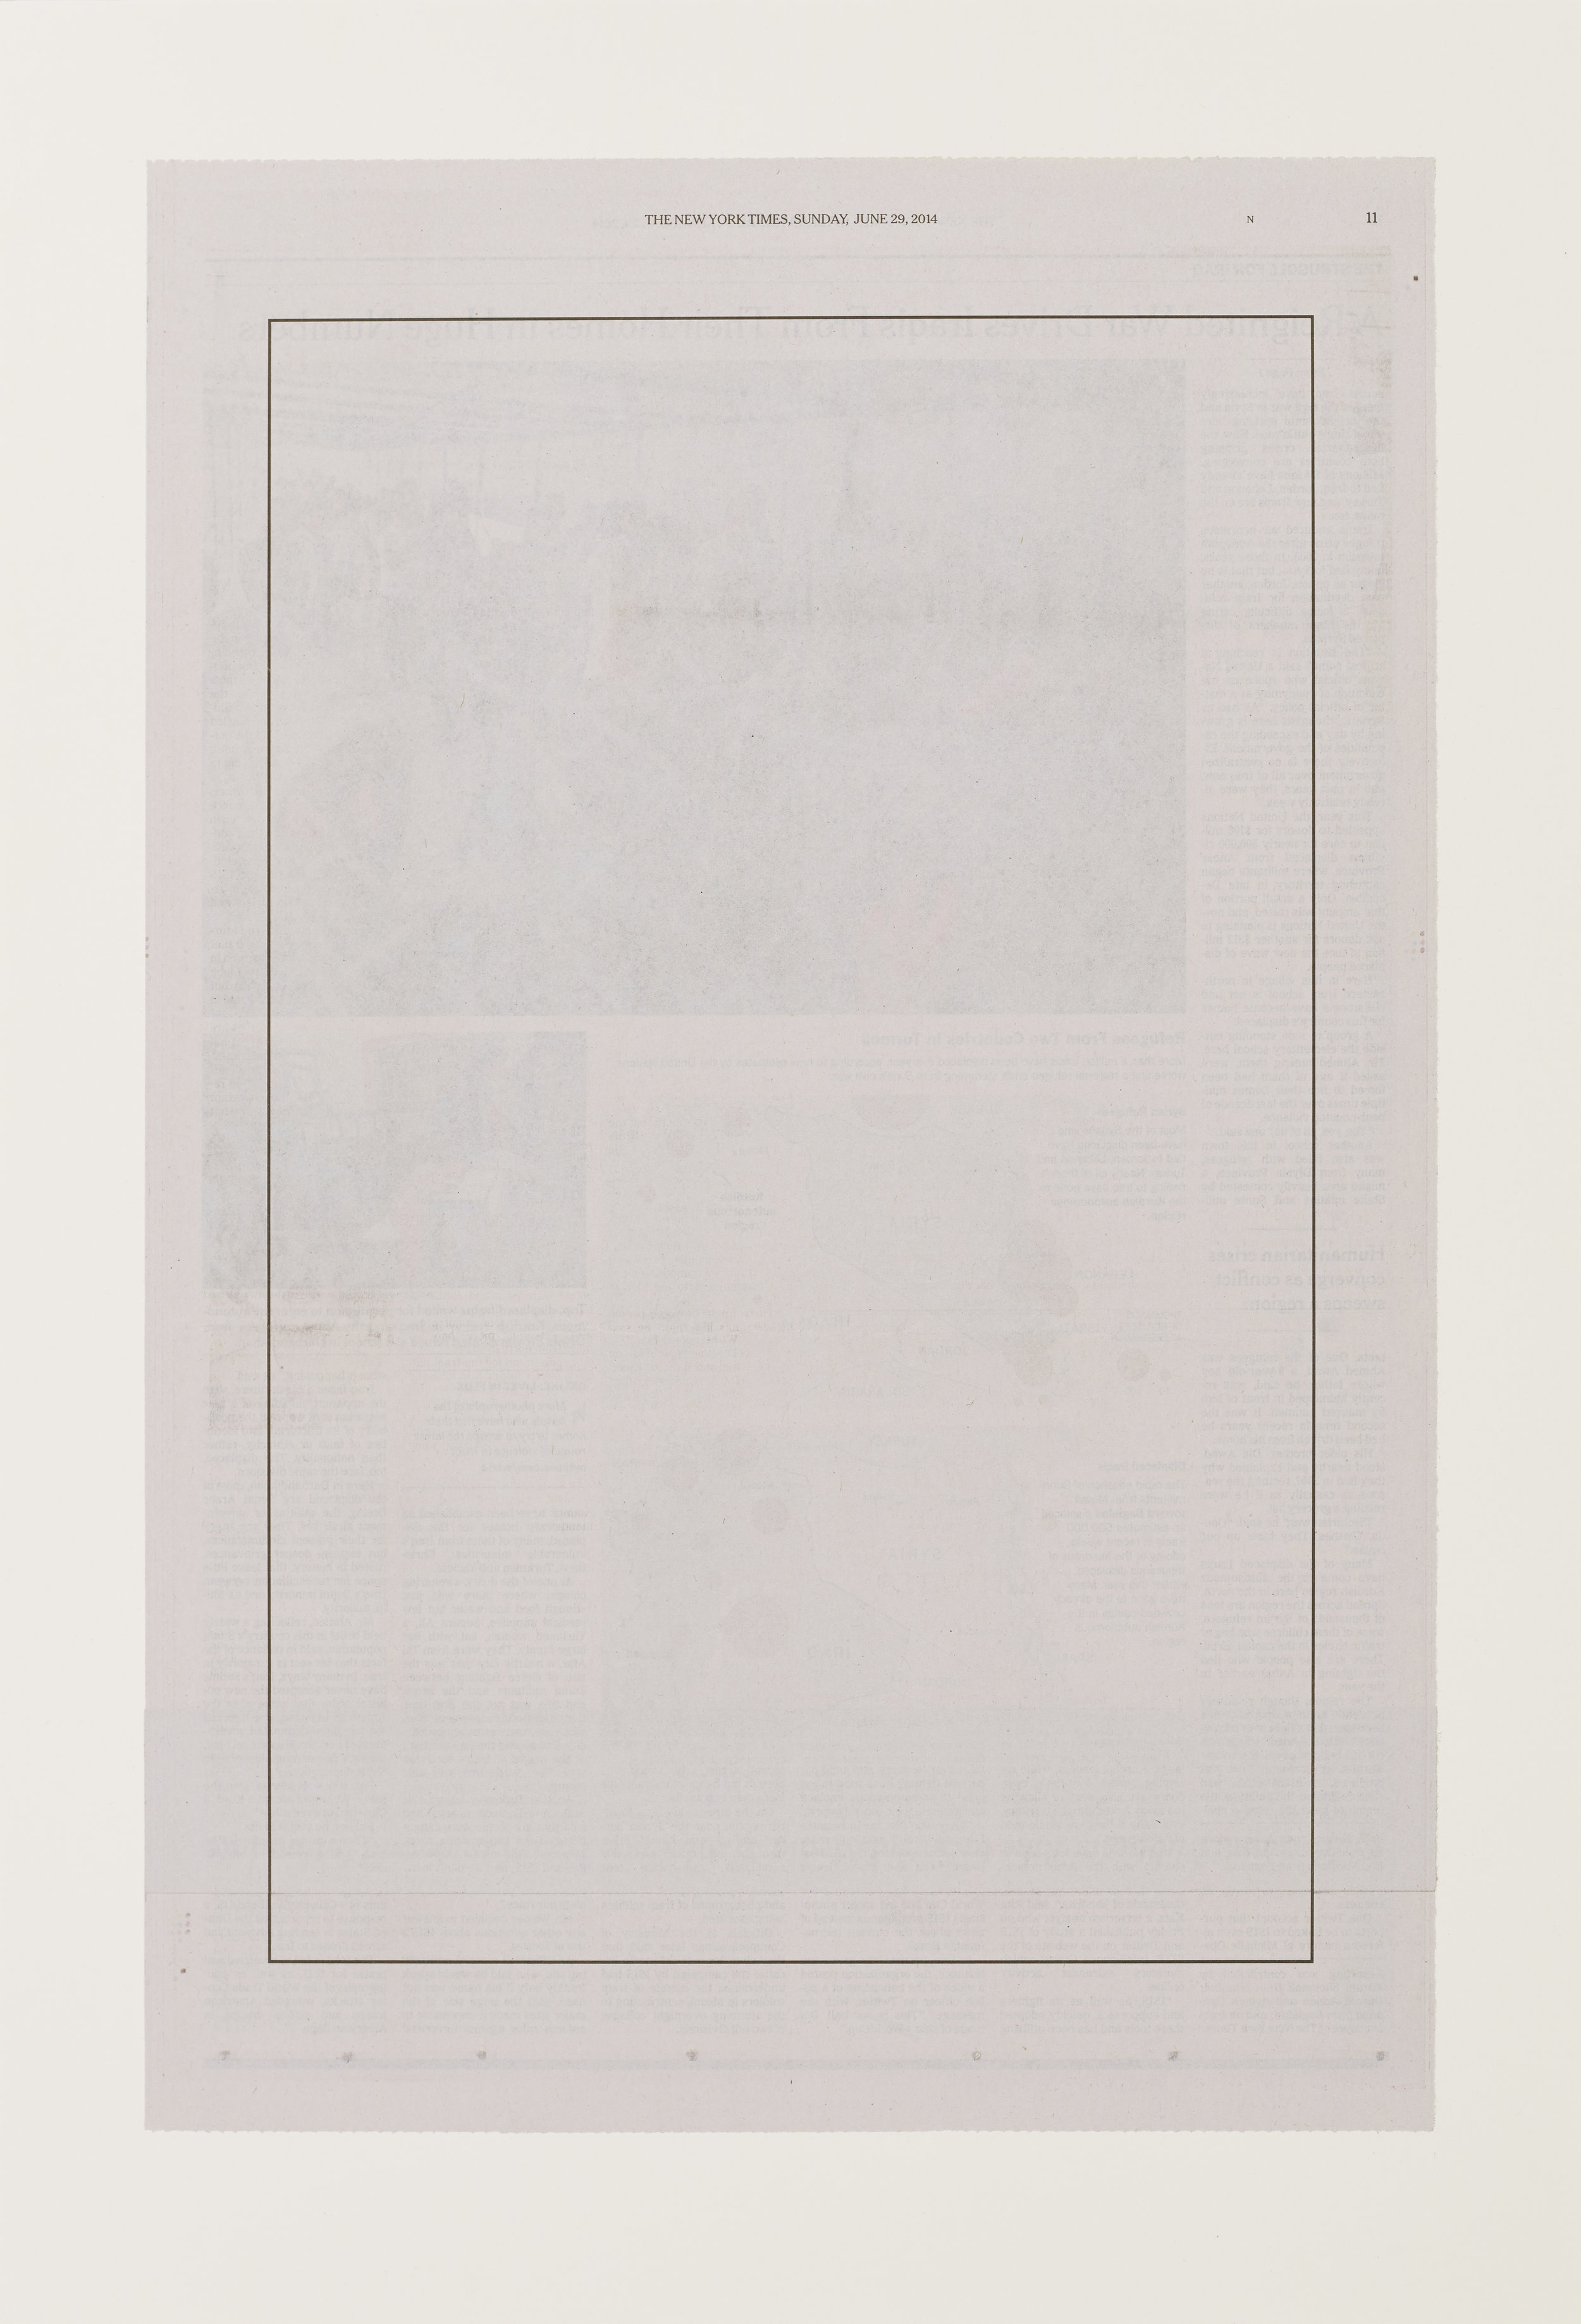 """Intentionally Blank (June 29, 2014)"", 2014 15""x23"", Altered New York Times page mounted on paper"